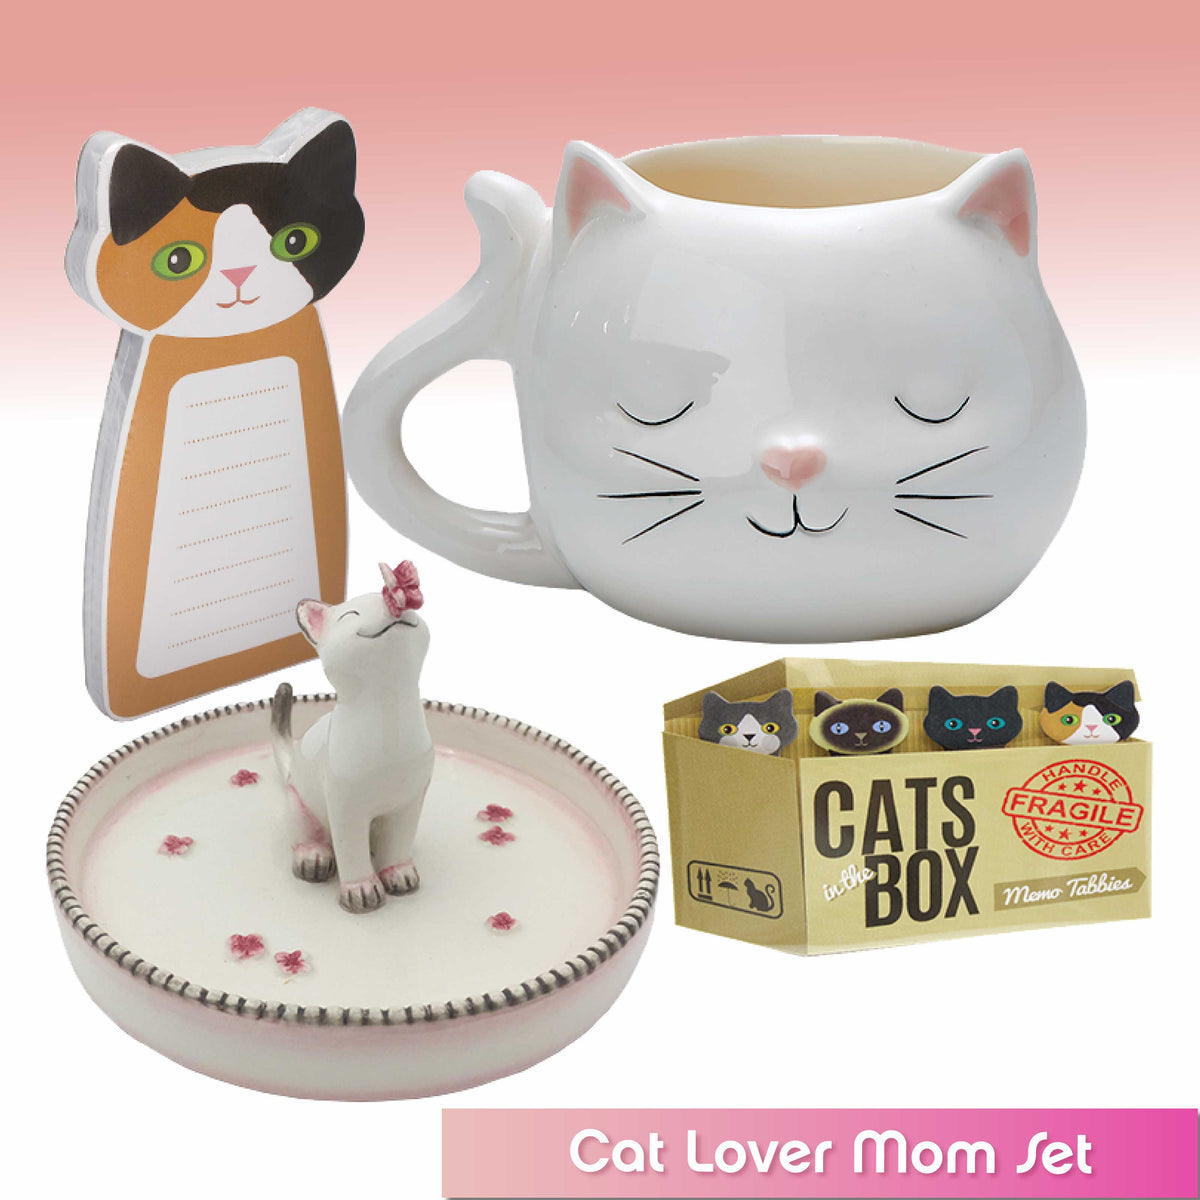 Cat Lover Mom Theme Set